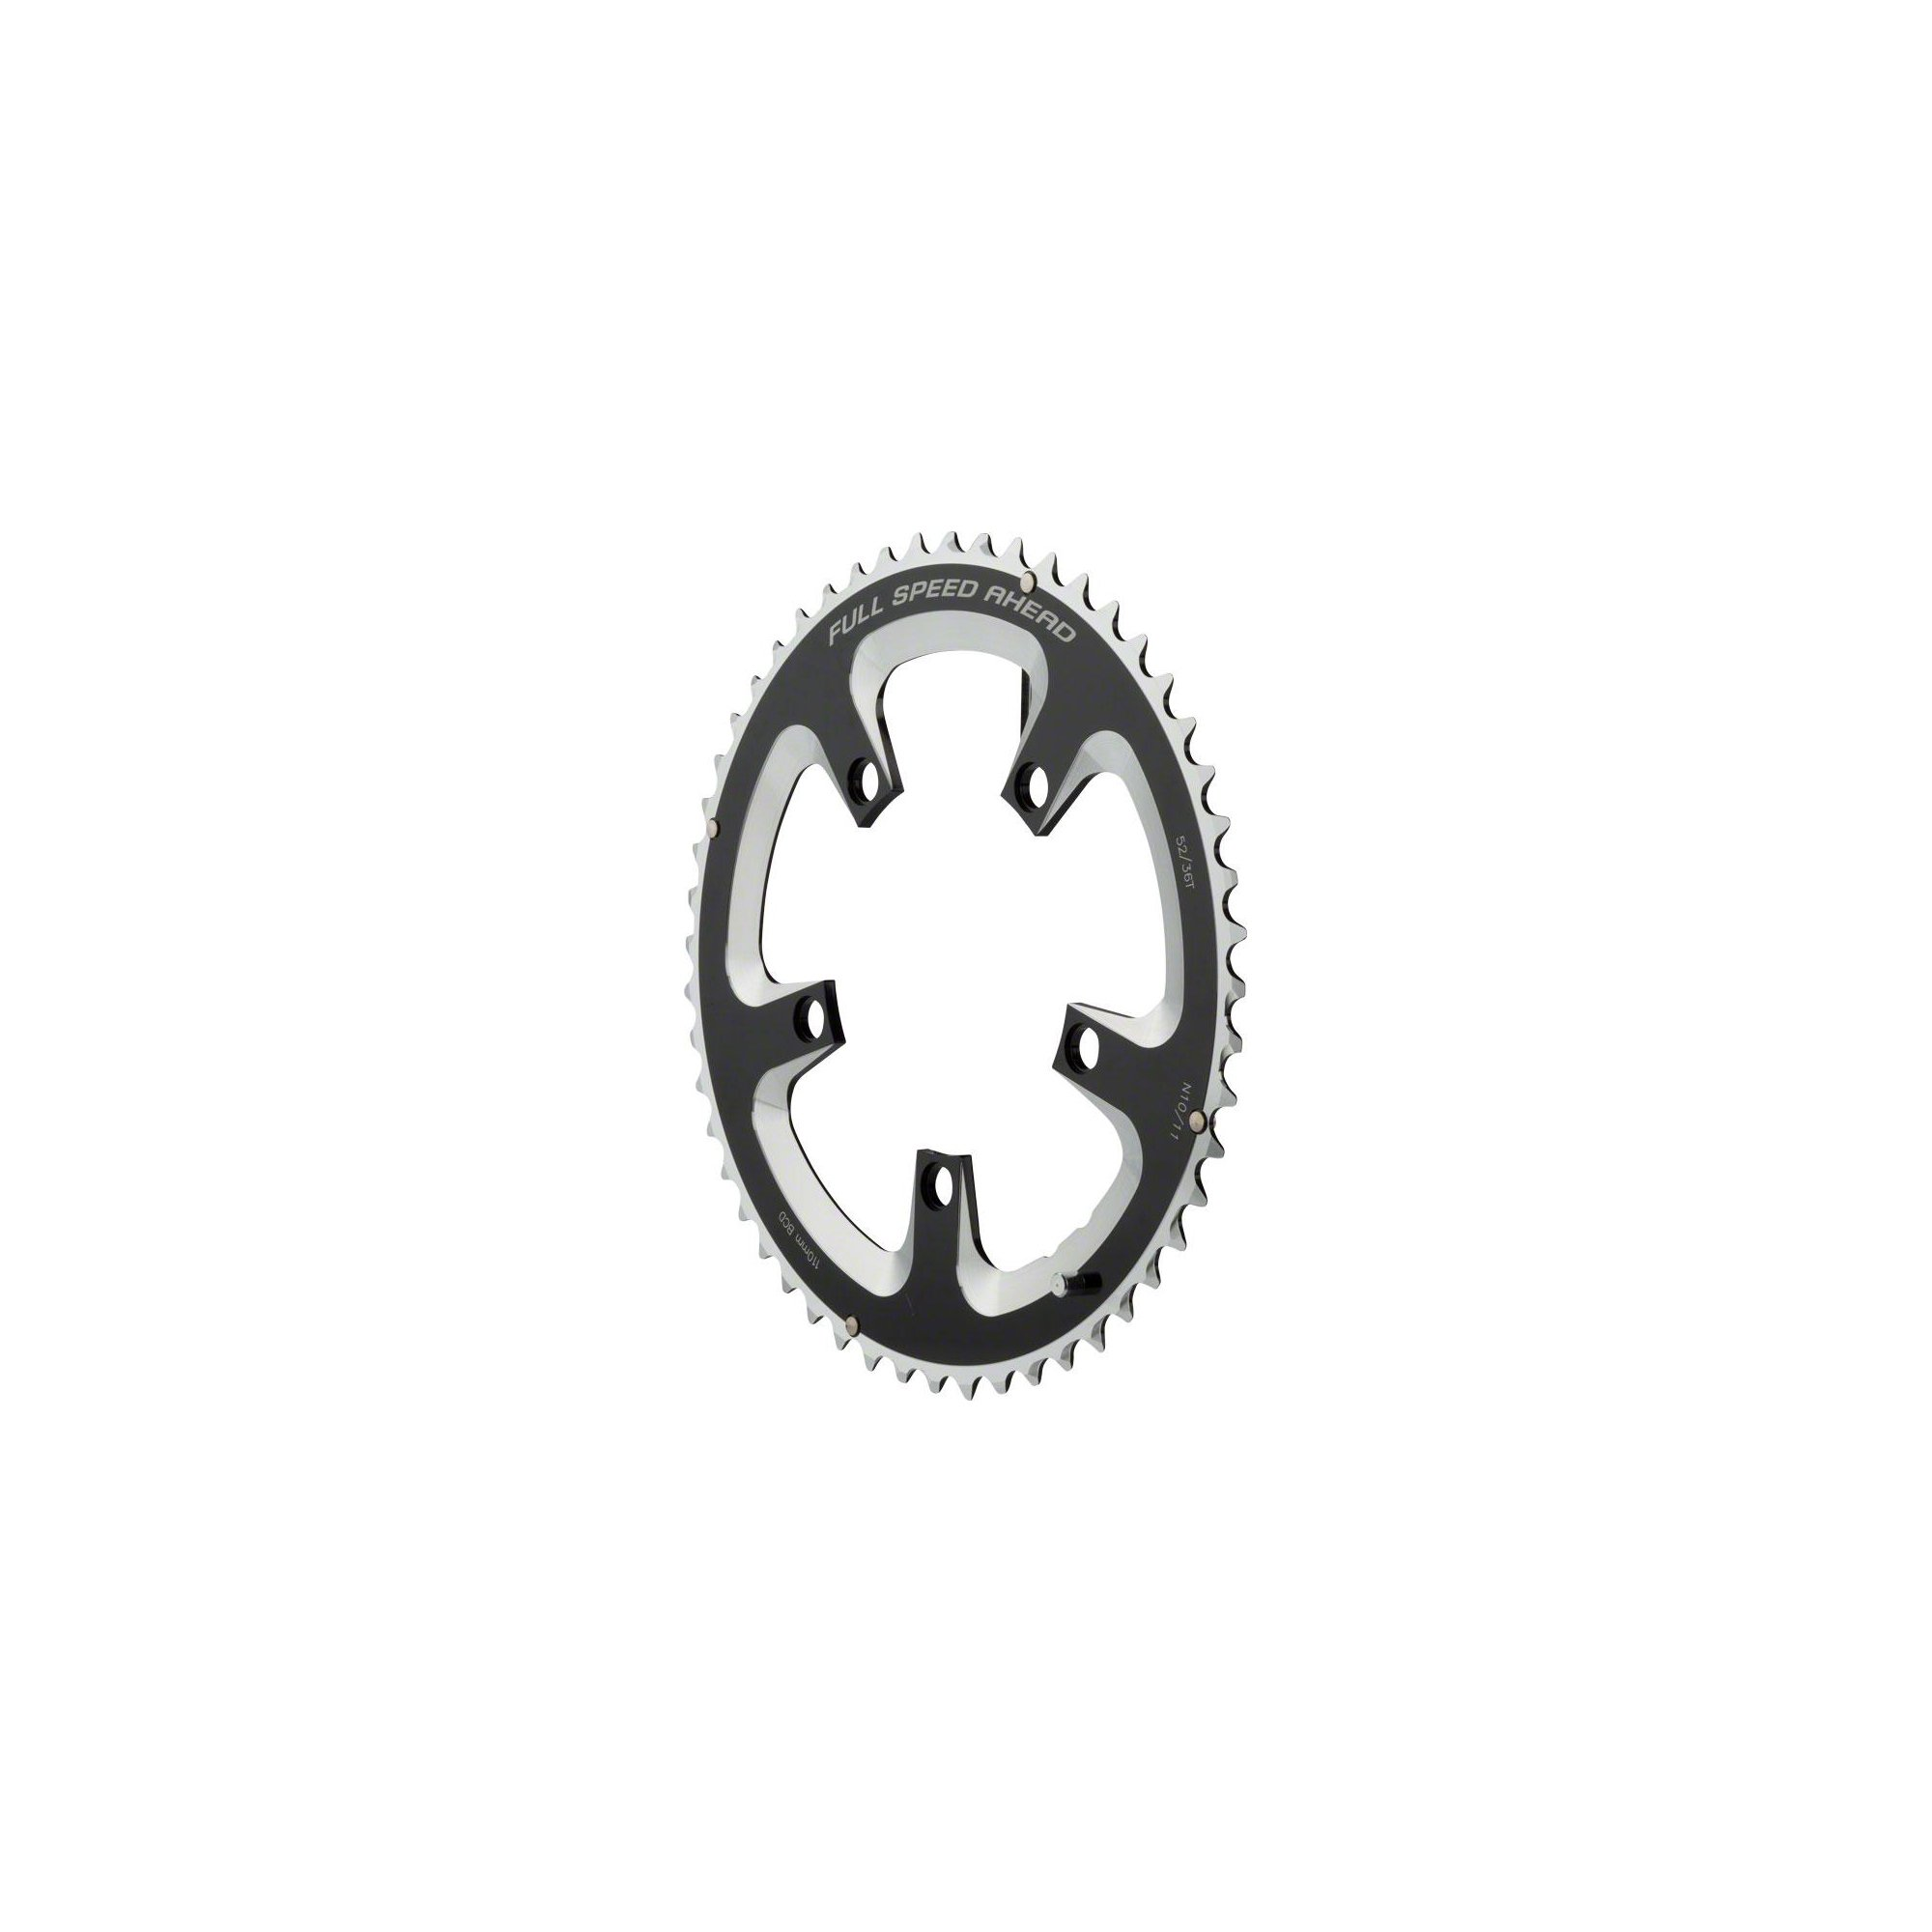 FSA Super Road Chainring Black, 110x52t by FSA